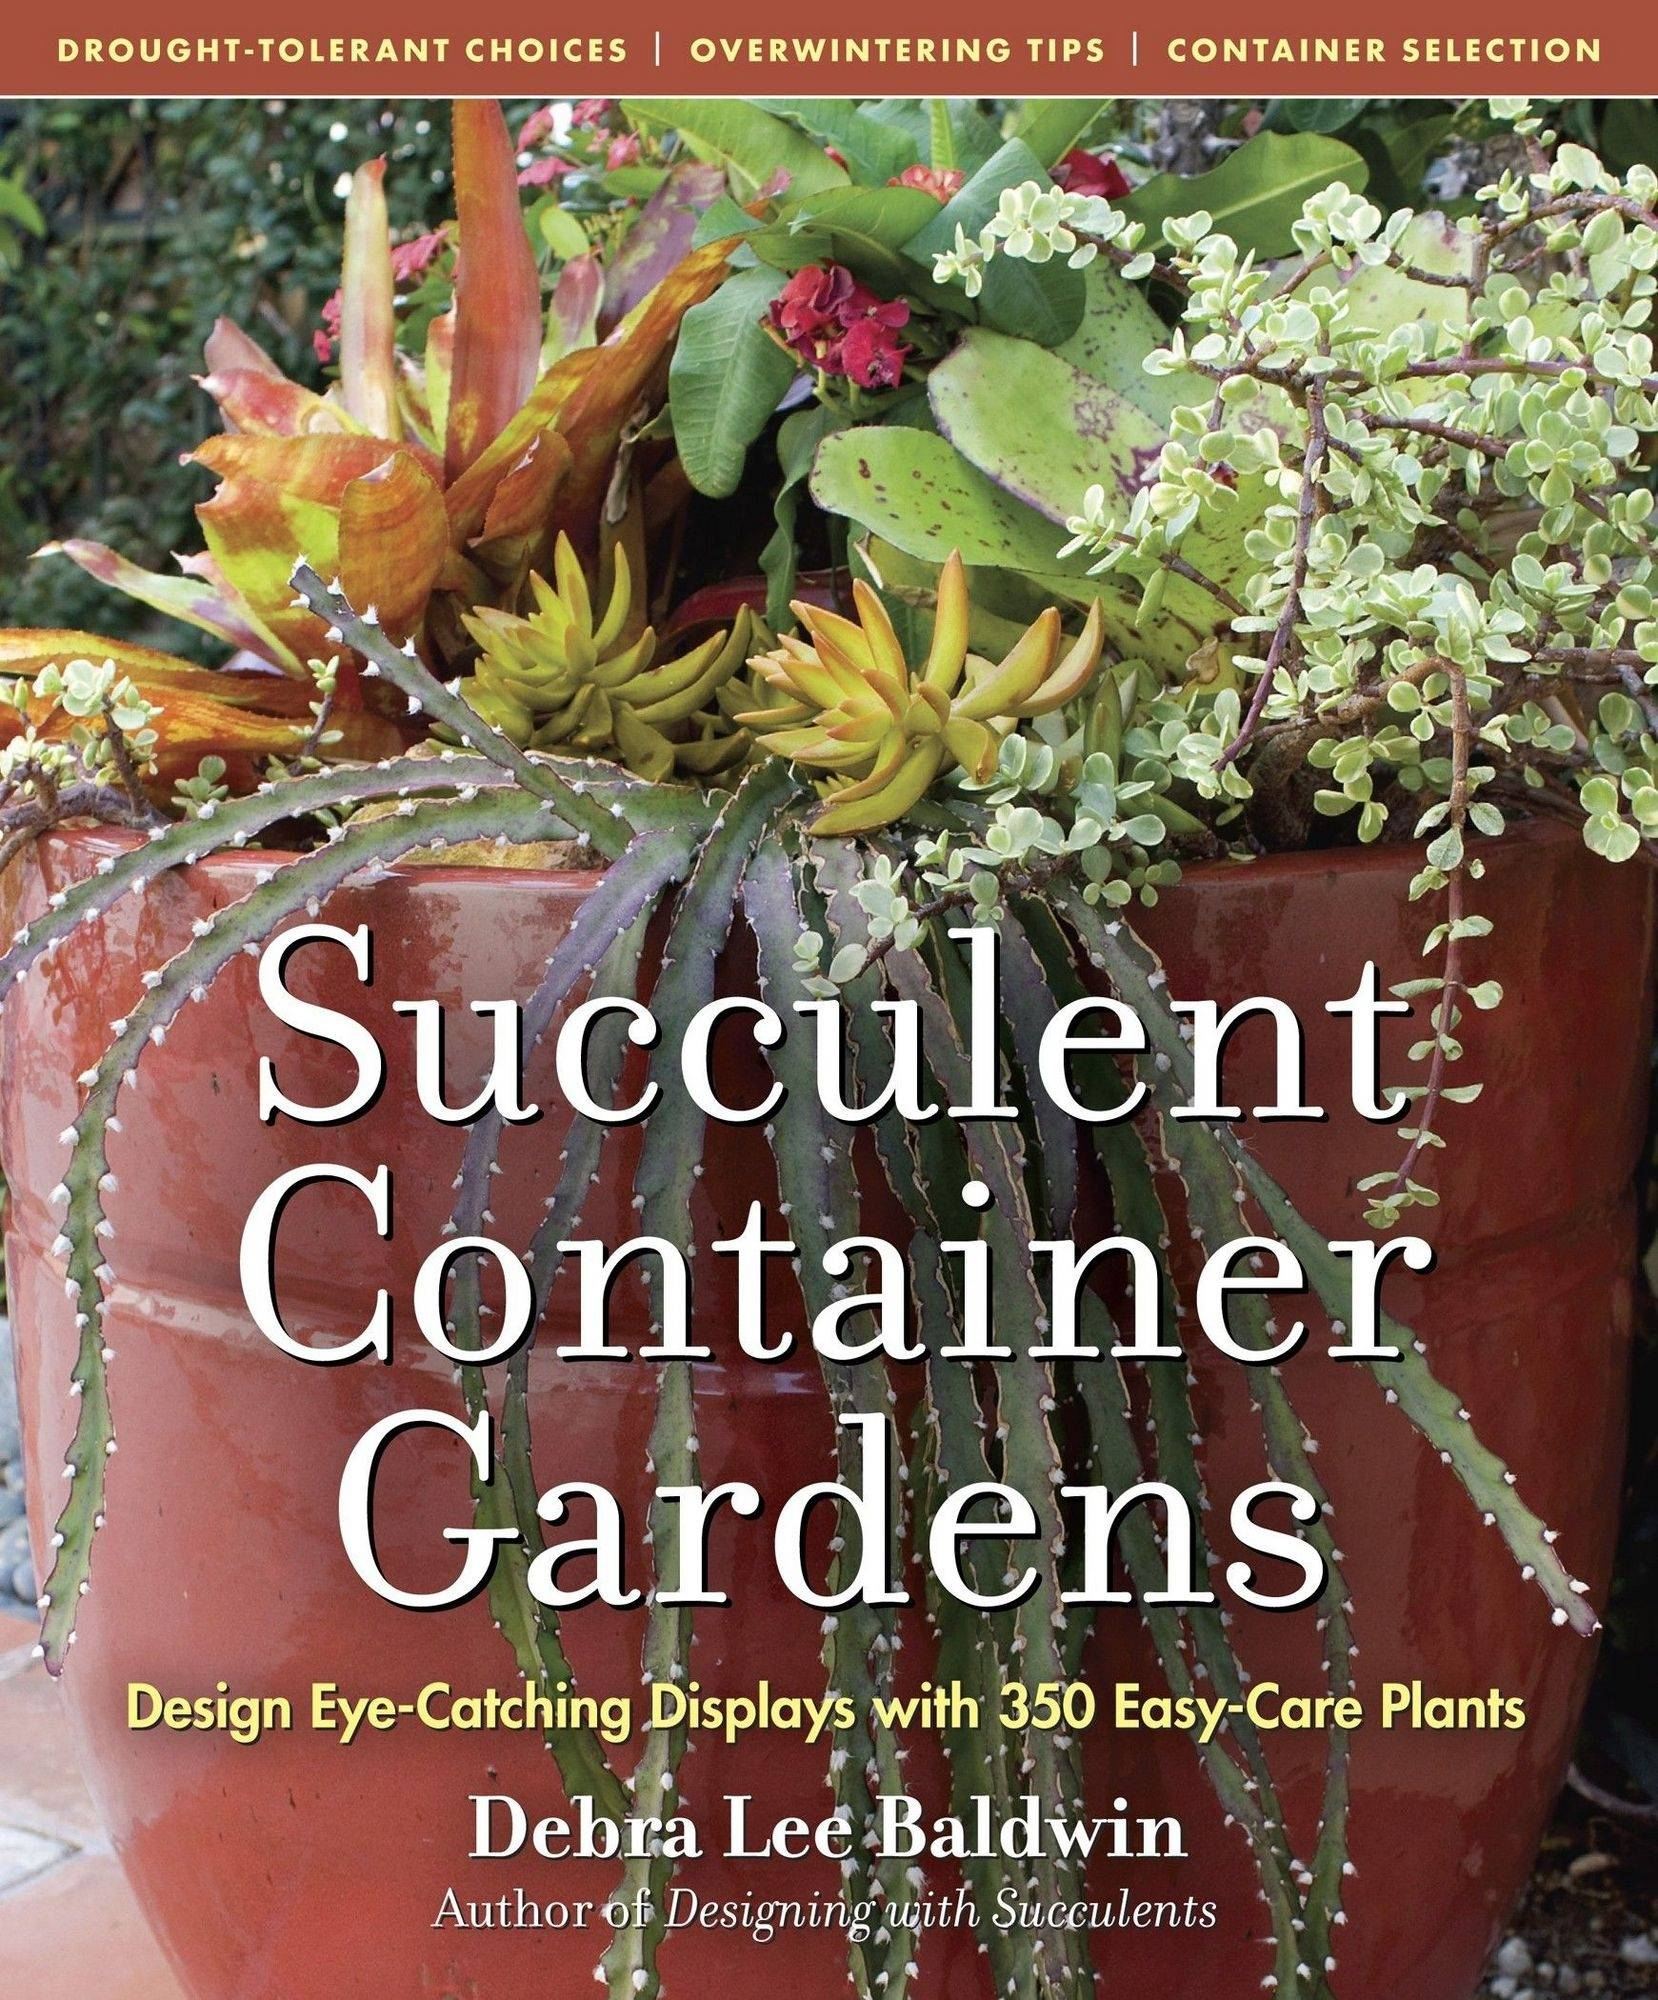 """ Succulent Container Gardens,"" by Debra Lee Baldwin."